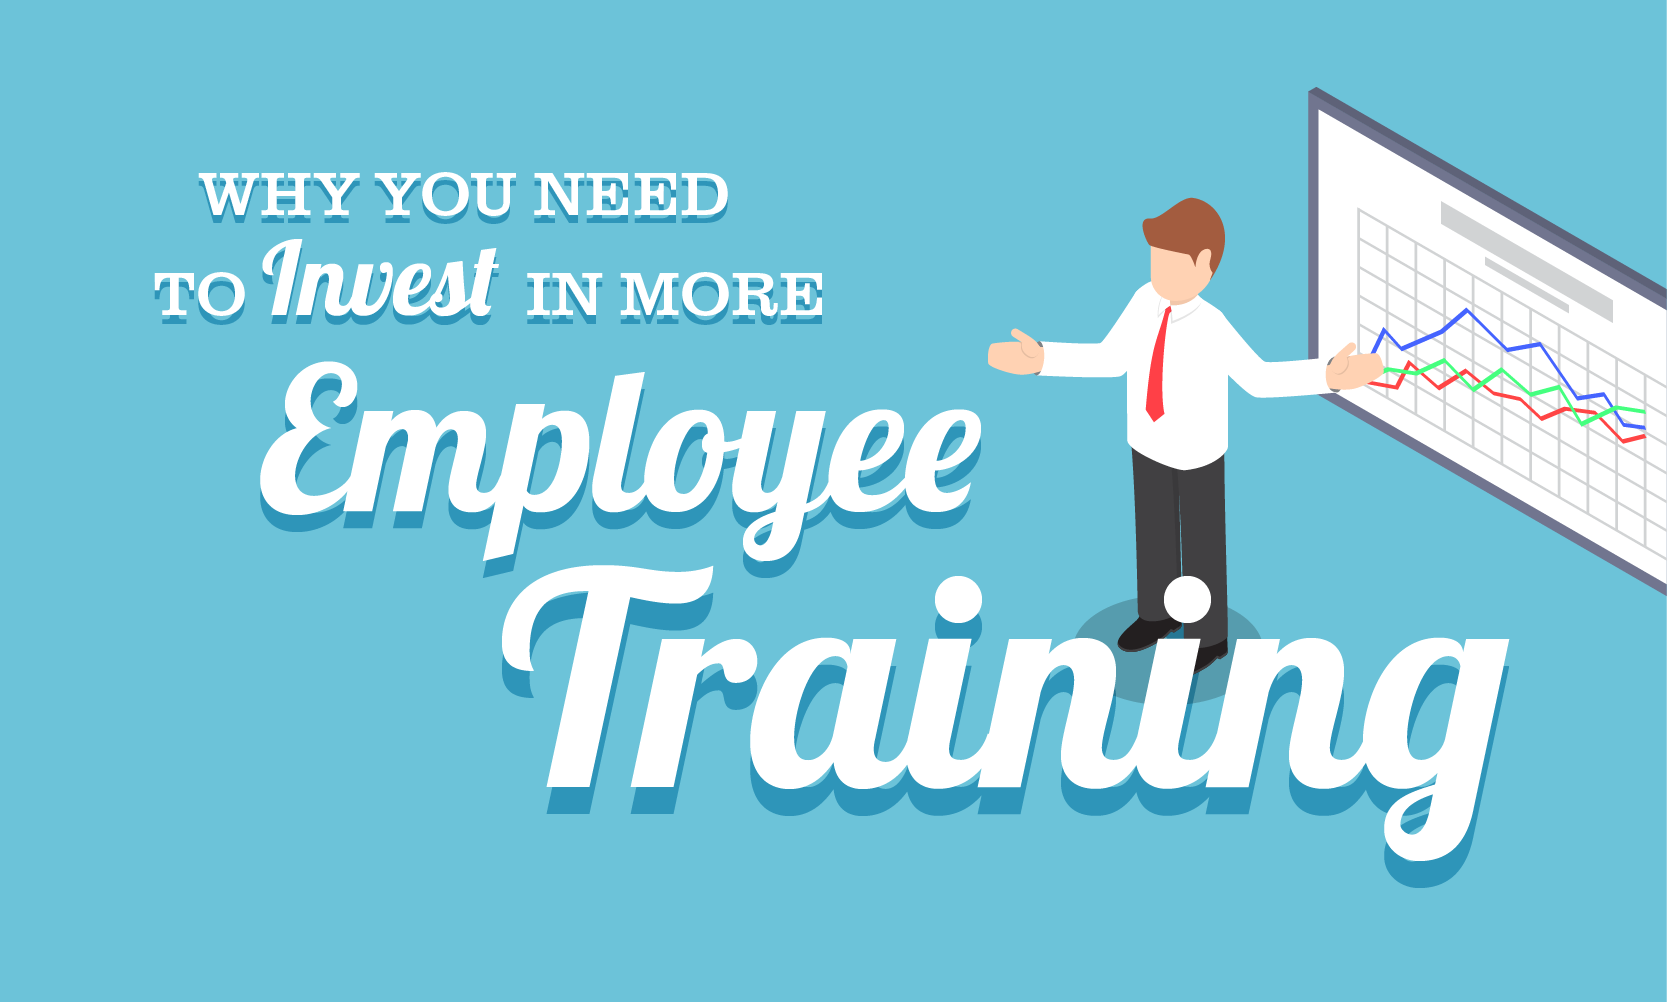 why you need to invest in more employee training